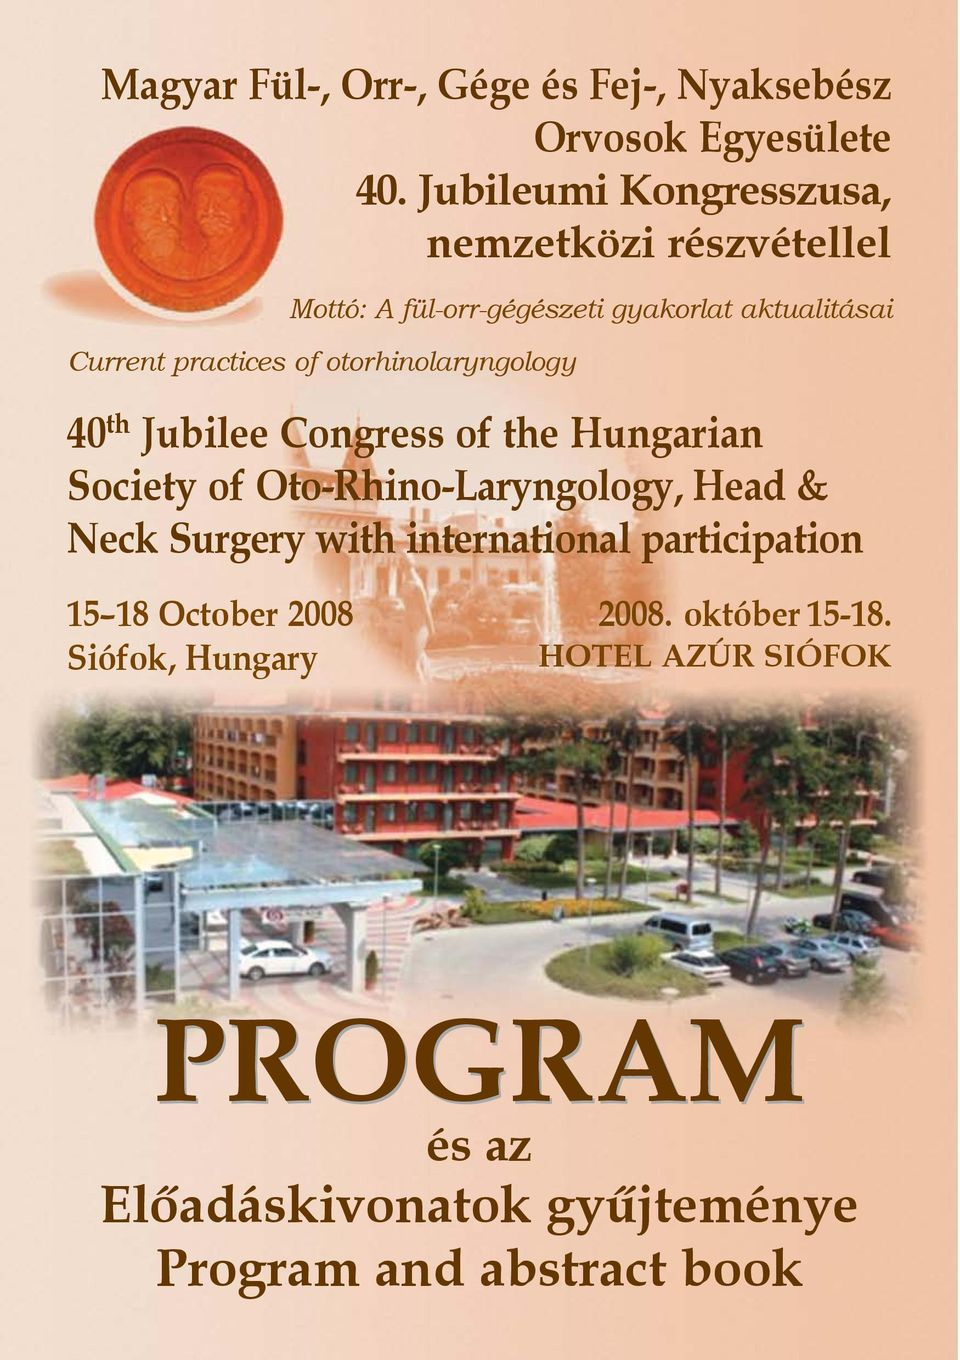 Hungarian Society of Oto-Rhino-Laryngology, Head & Neck Surgery with international participation 15 18 October